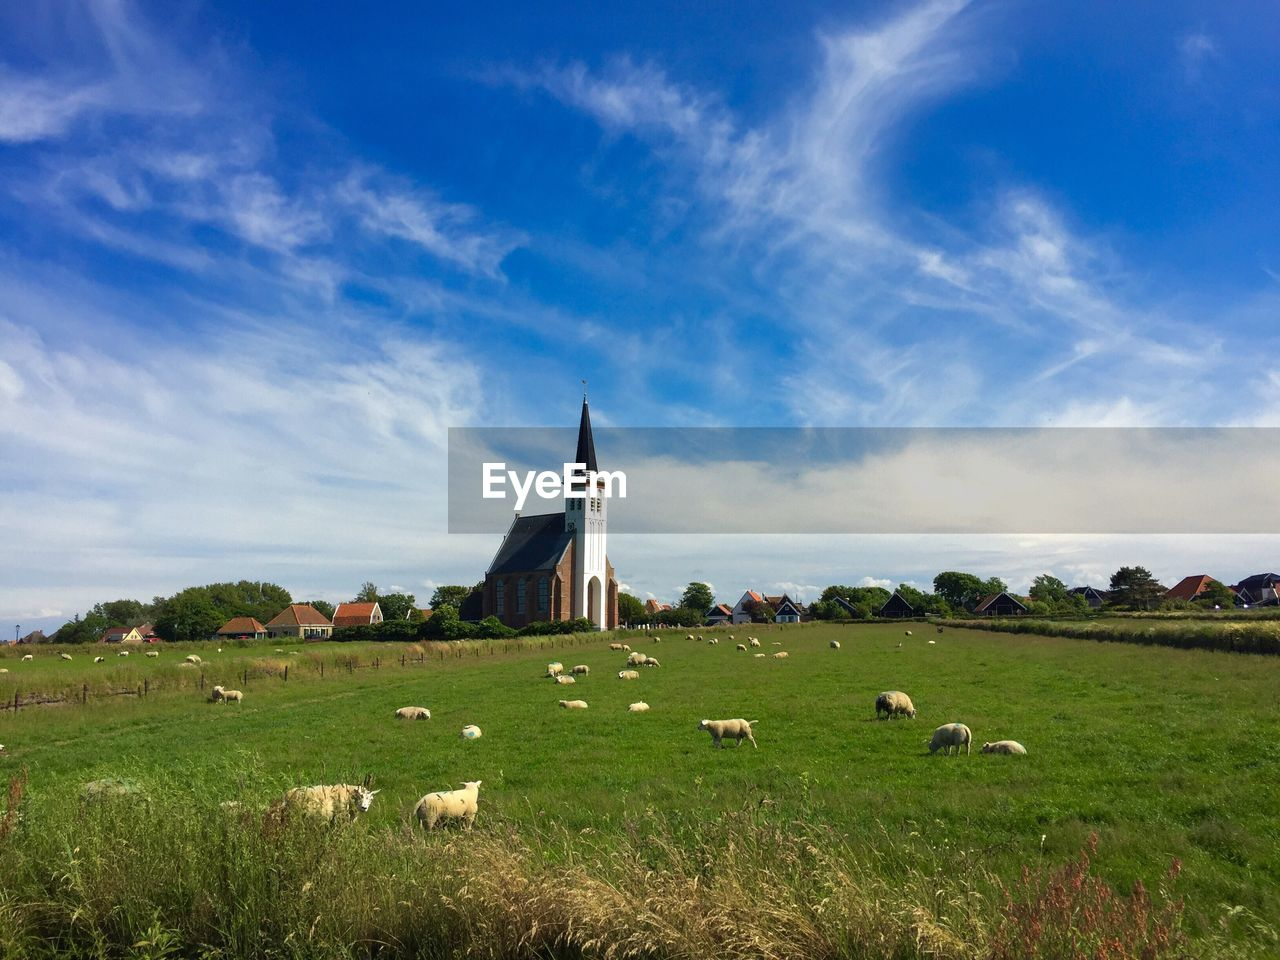 grass, built structure, architecture, sky, field, landscape, cloud - sky, no people, day, building exterior, tree, nature, scenics, beauty in nature, outdoors, animal themes, windmill, mammal